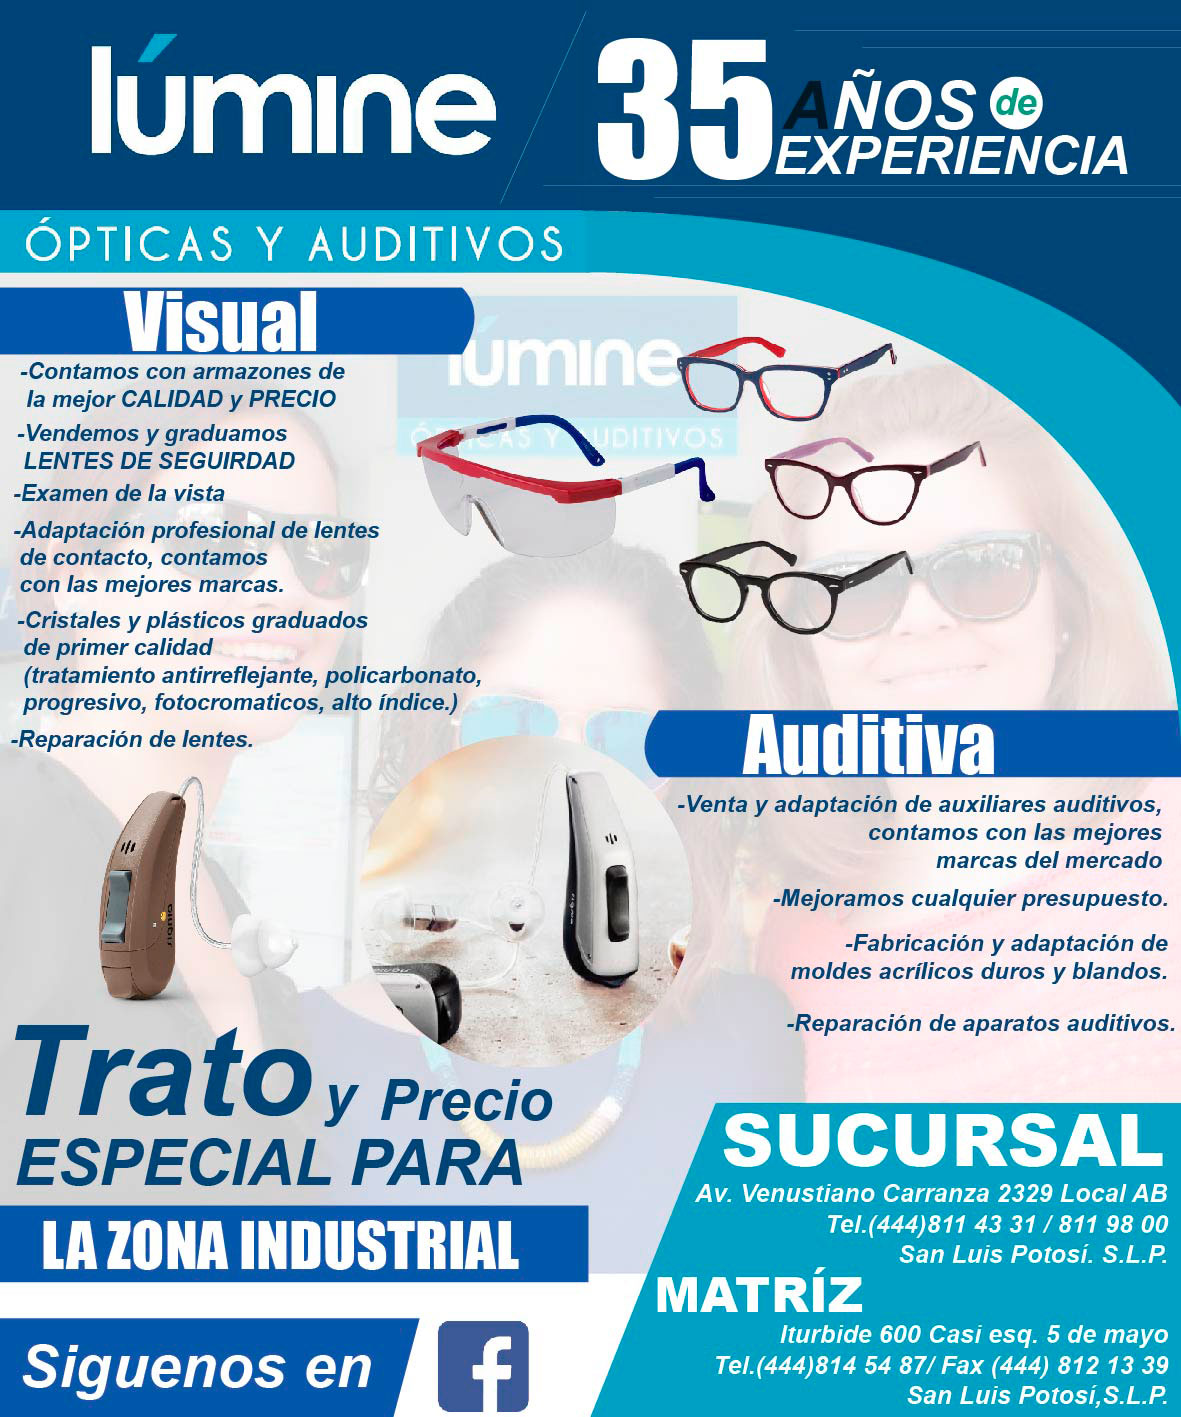 lumine-optica-auditivos-opticas-revista-contacto-industrial